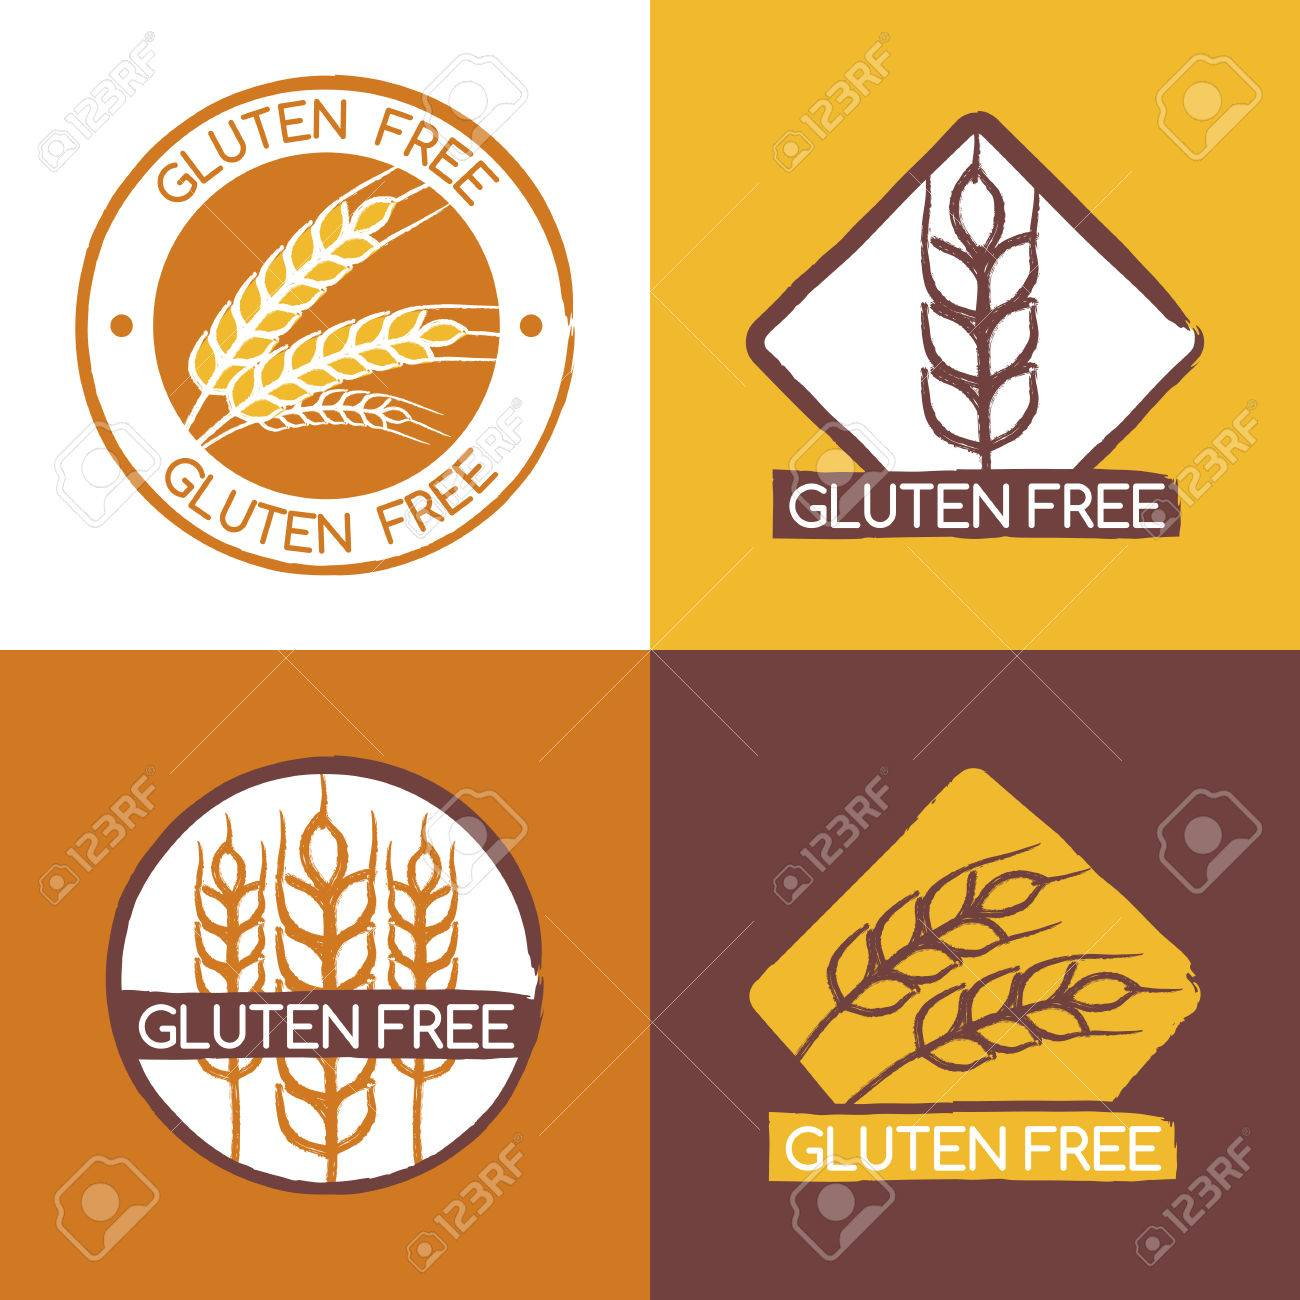 logo design for set of vector gluten product badges labels stickers wheat ears logo design logo